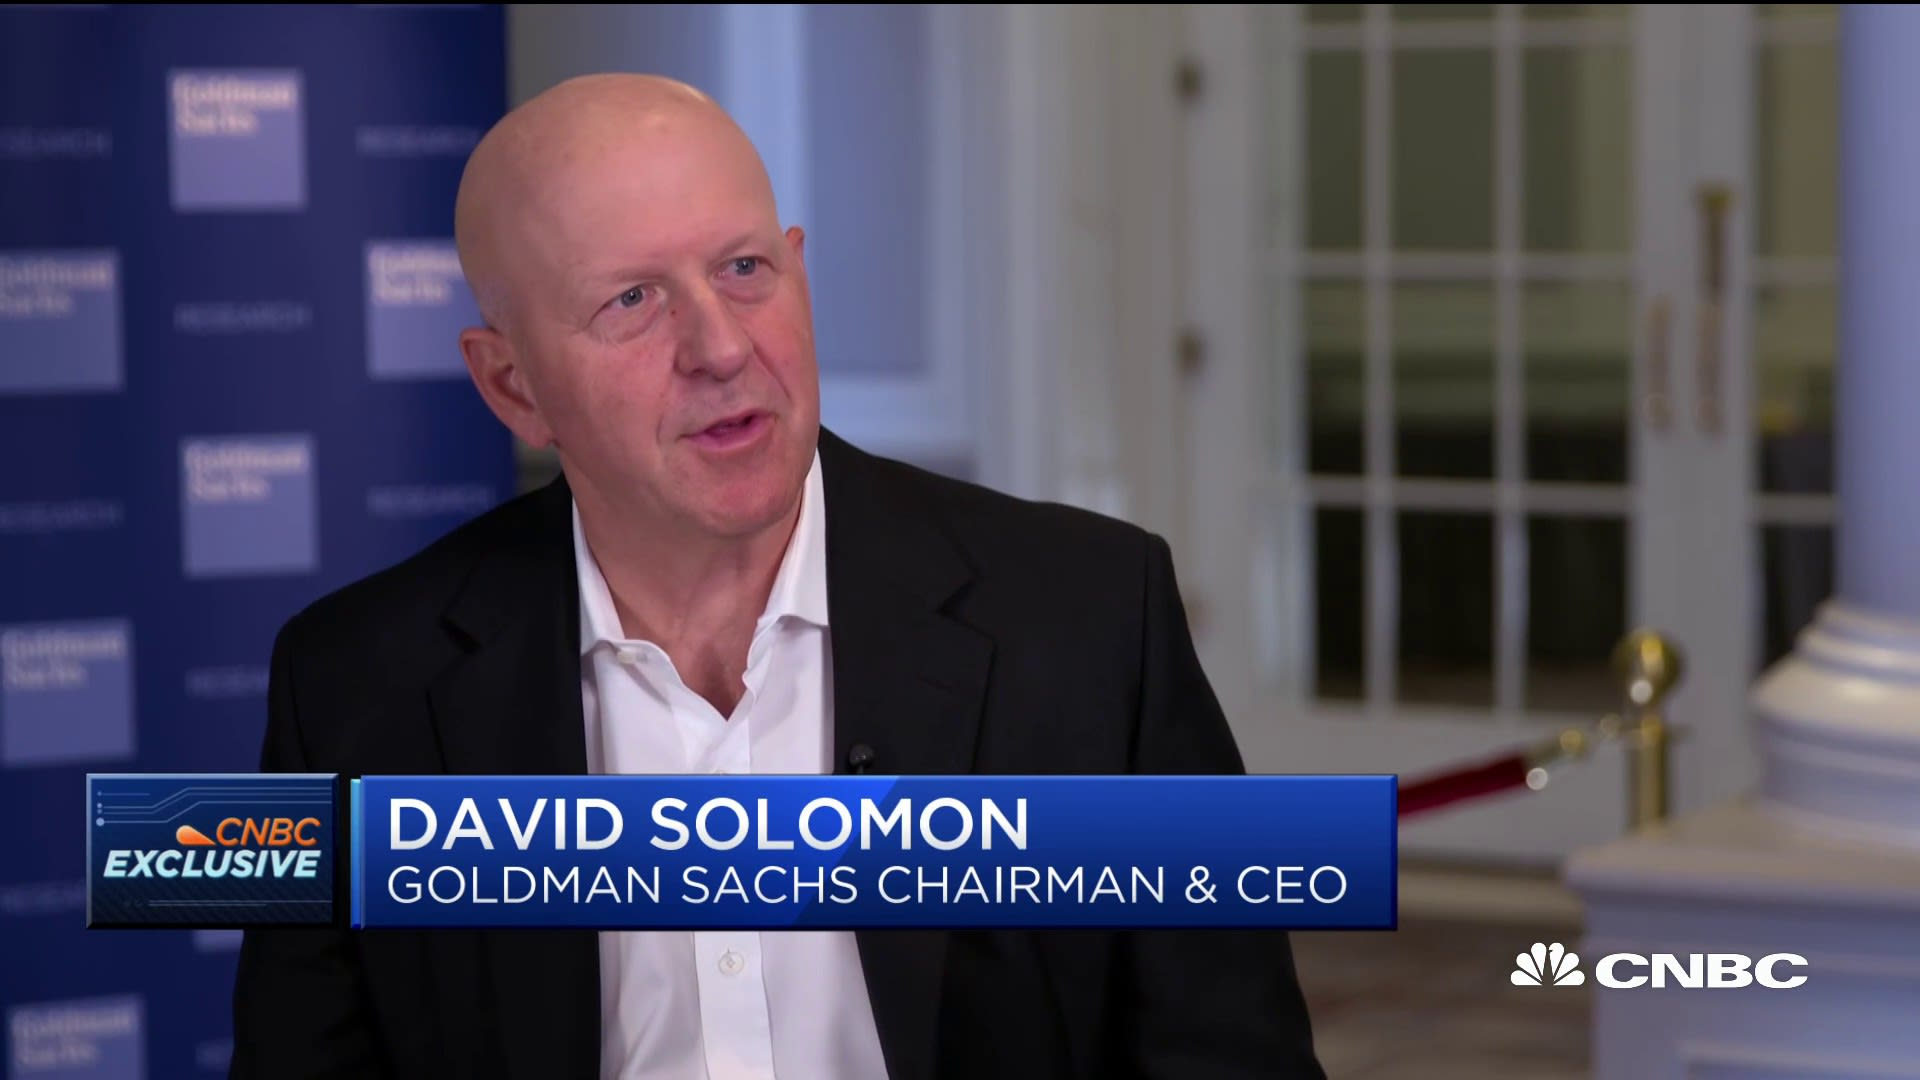 Watch CNBC's full interview with Goldman Sachs CEO David Solomon